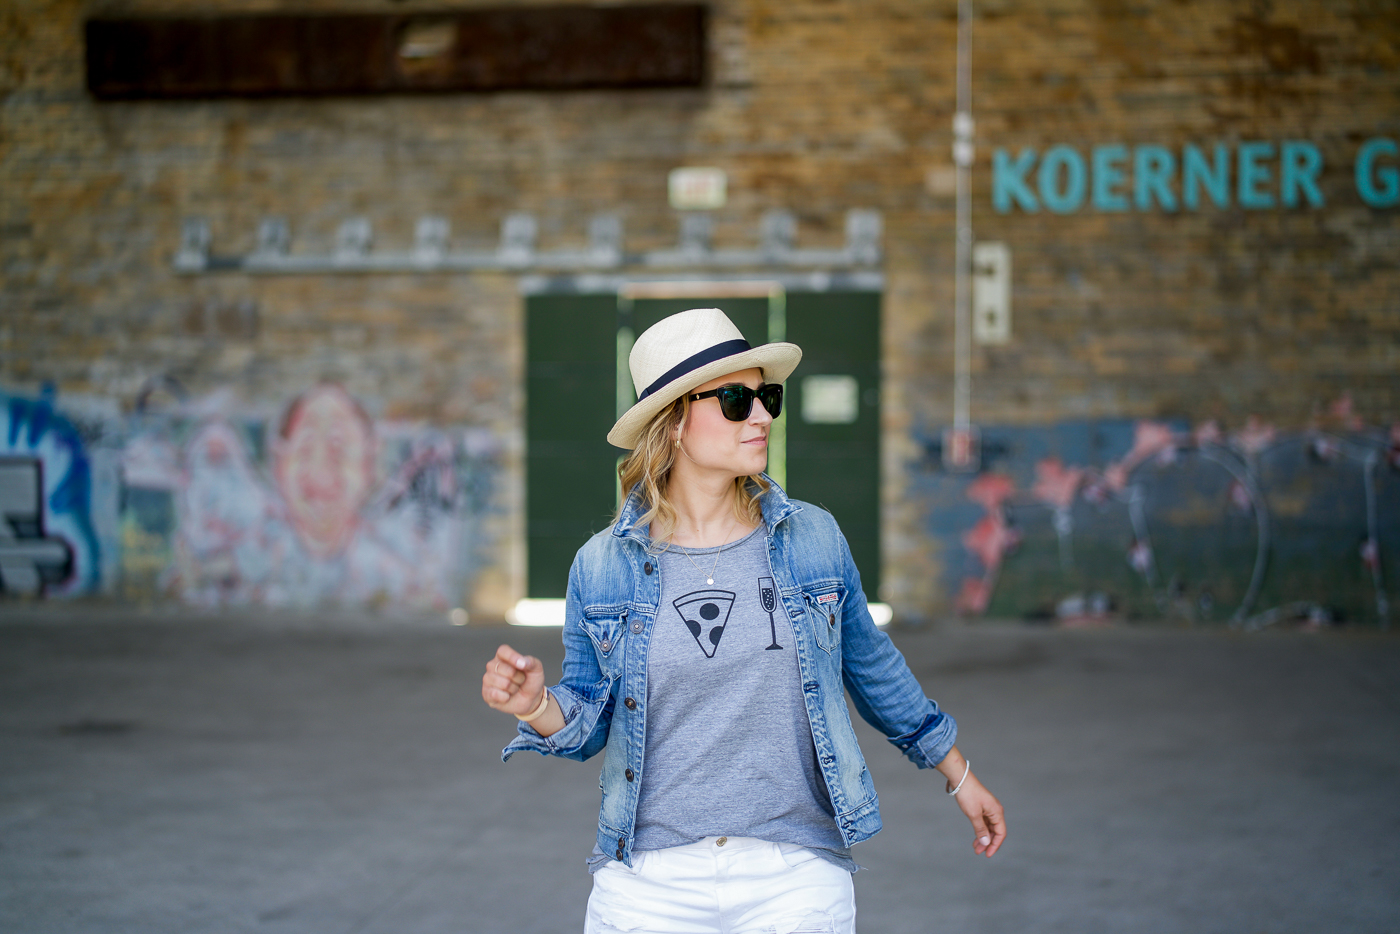 Jackie is a Canadian fashion and lifestyle blogger and she is wearing a Chaser brand daily riturals graphic tee with a jean jacket and straw hat